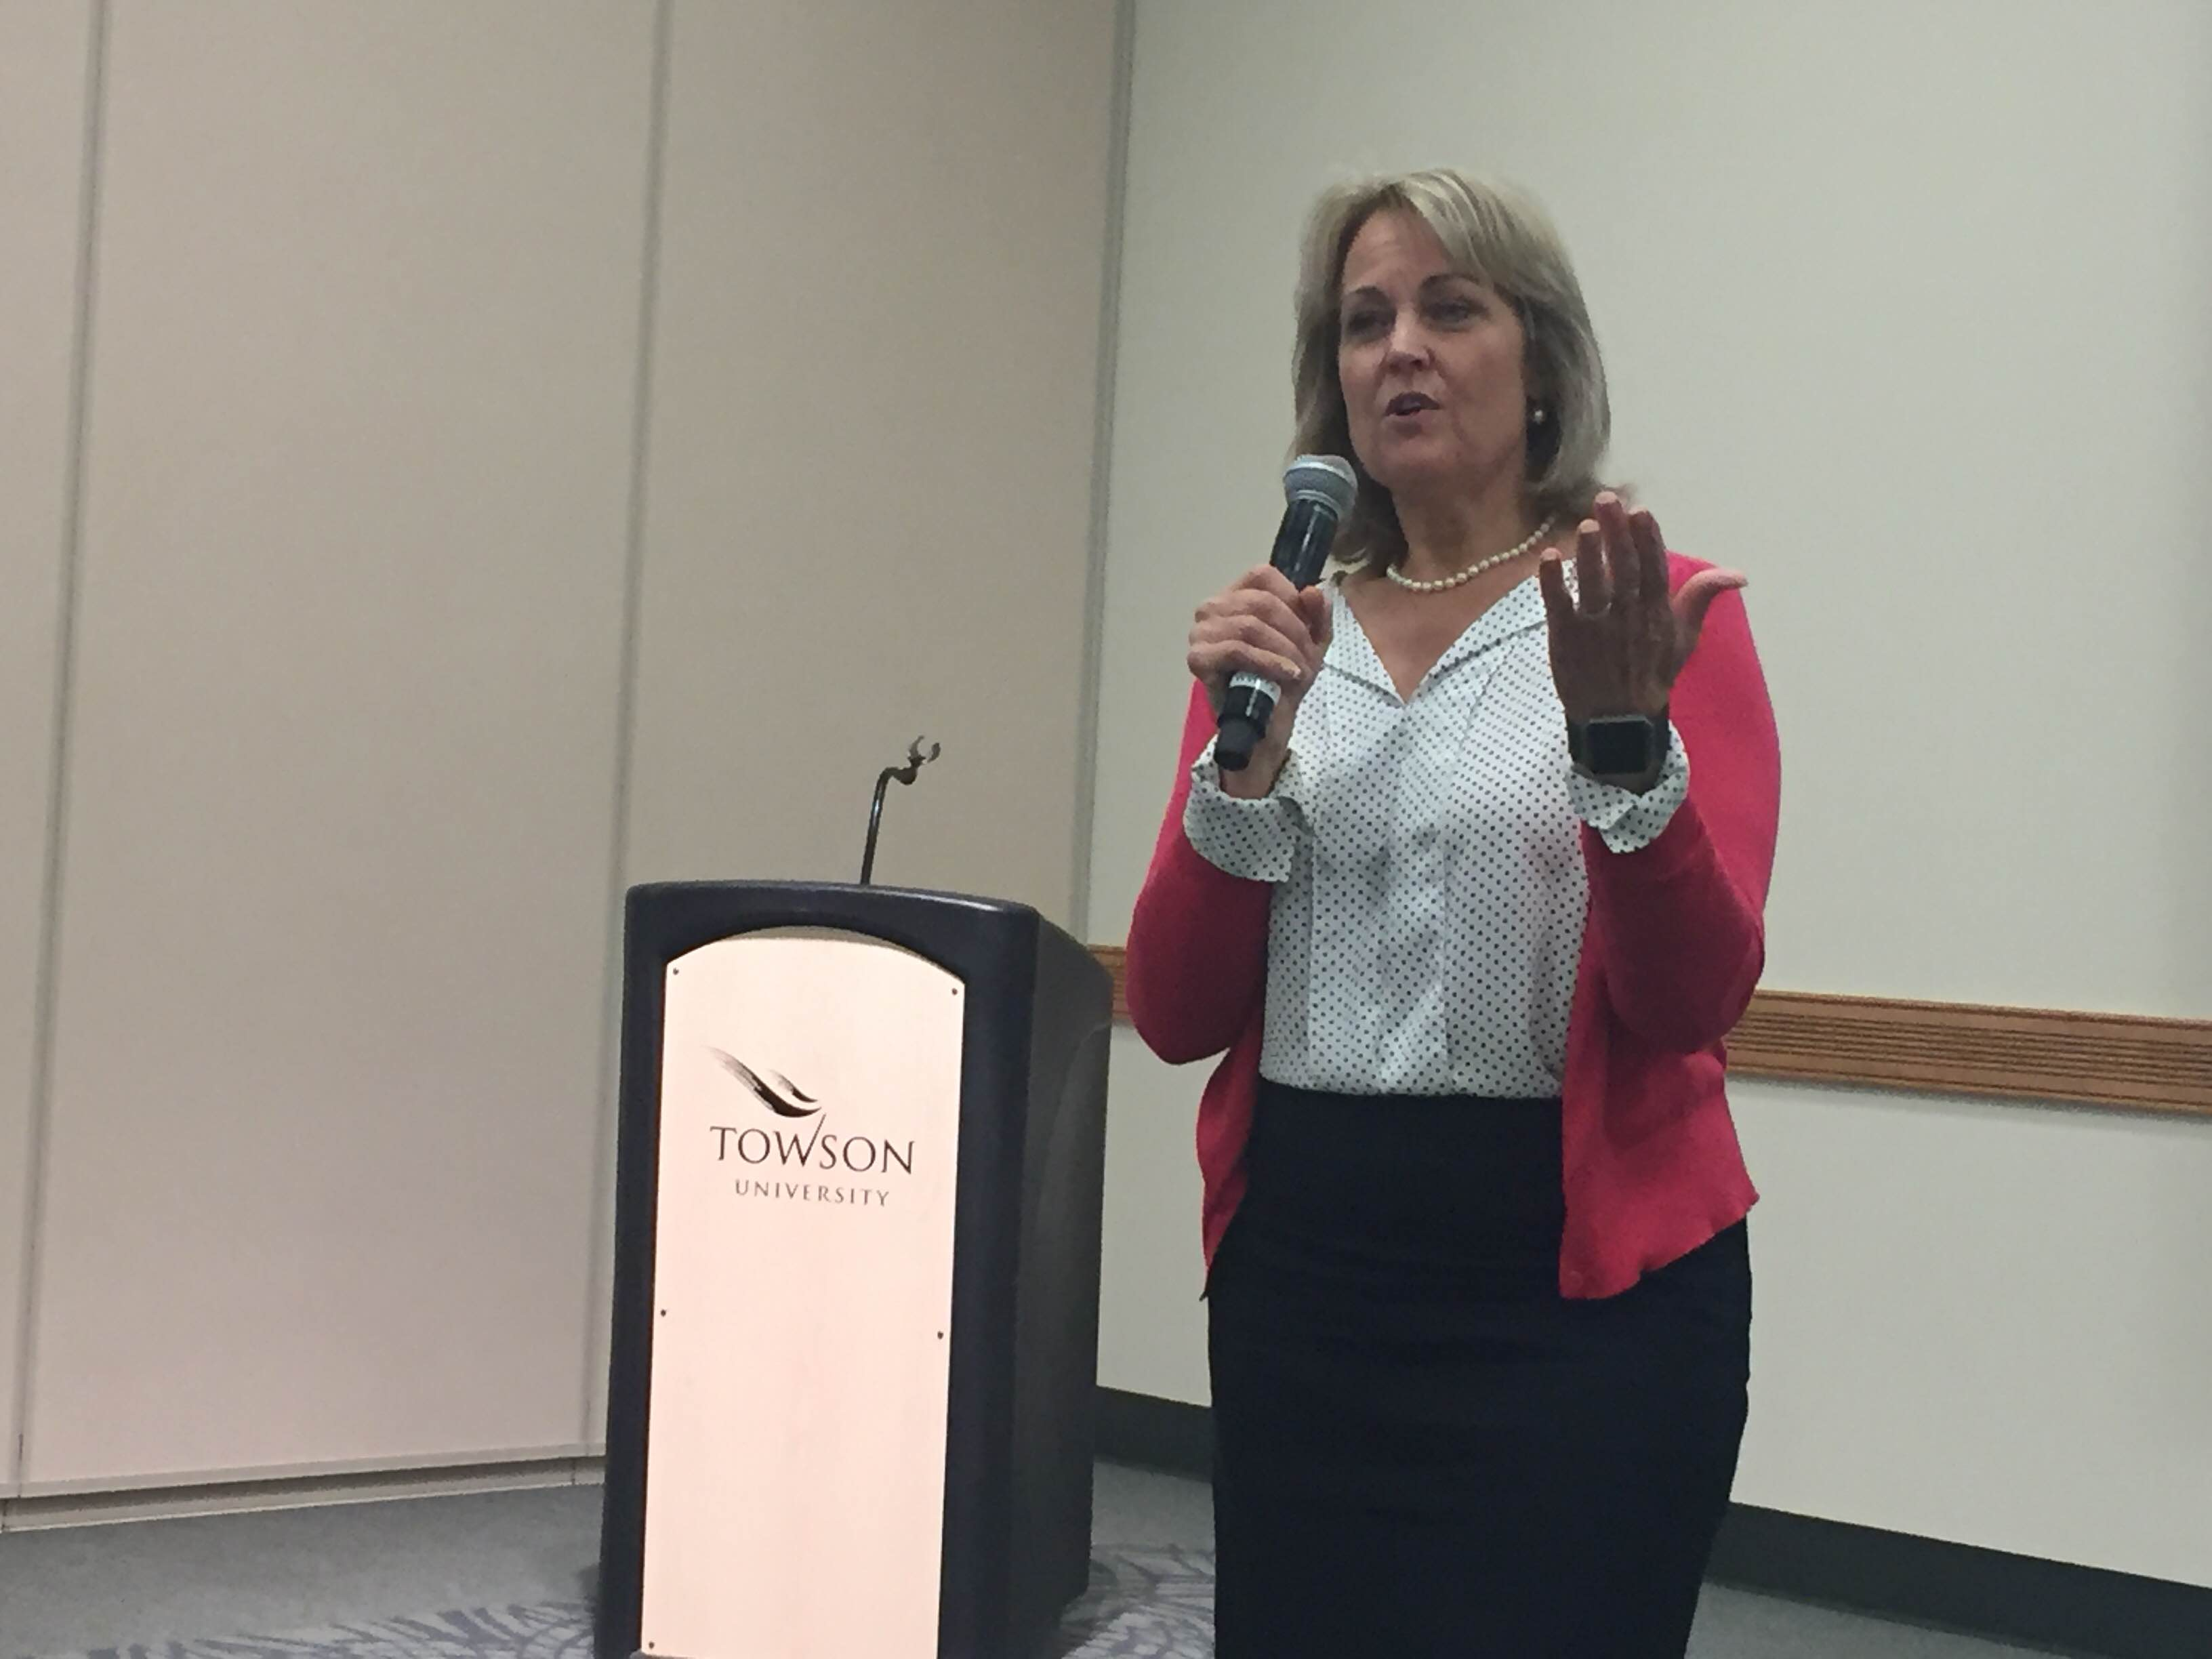 Del. Kathy Szeliga speaks to students at Towson. Photo by Cody Boteler